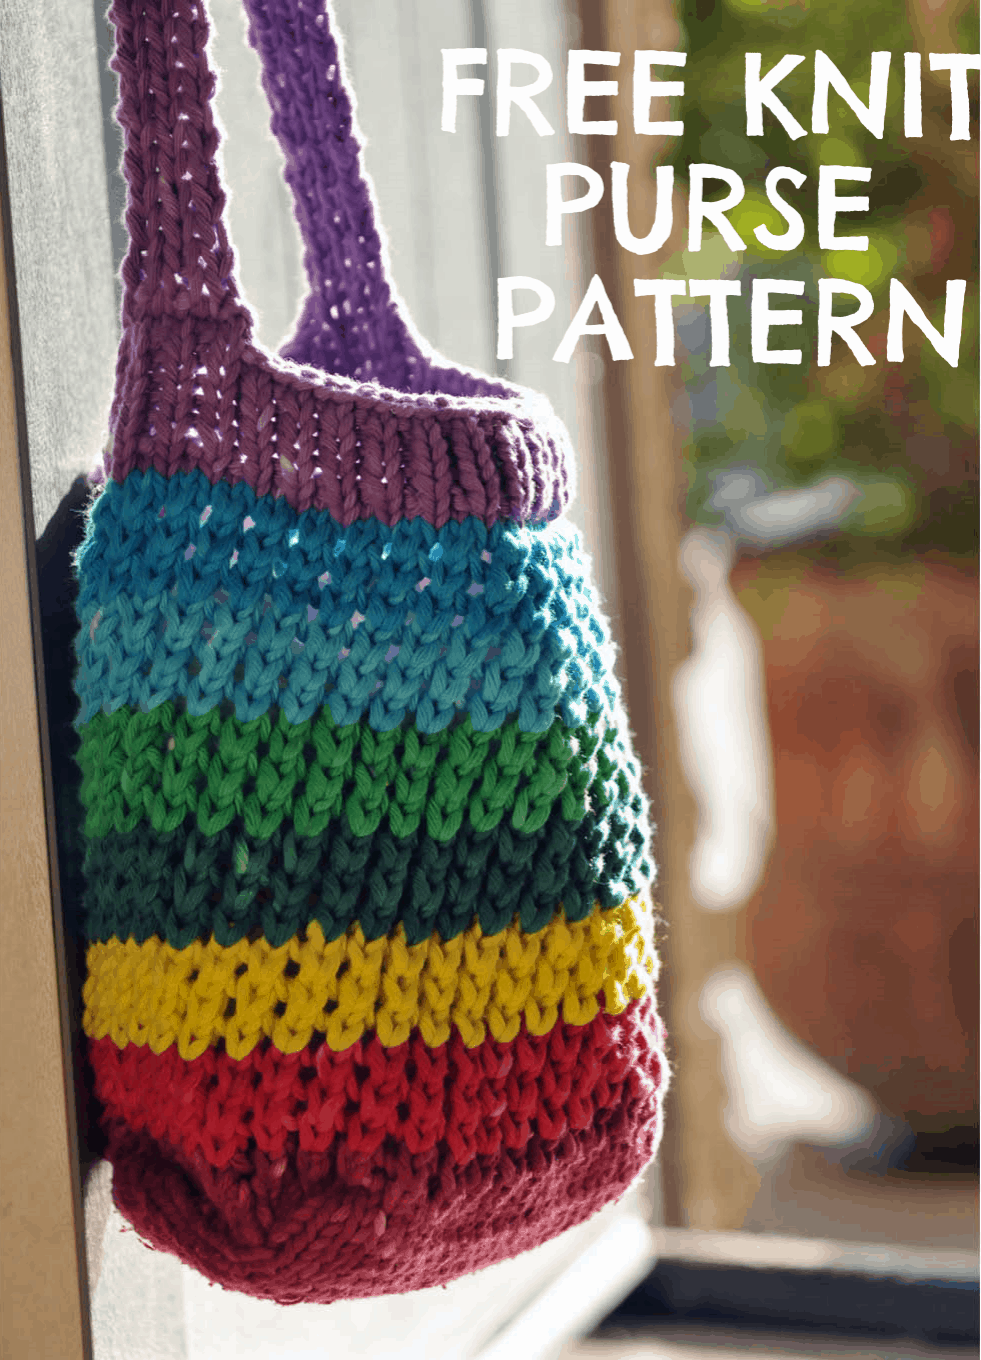 Knit purse pattern